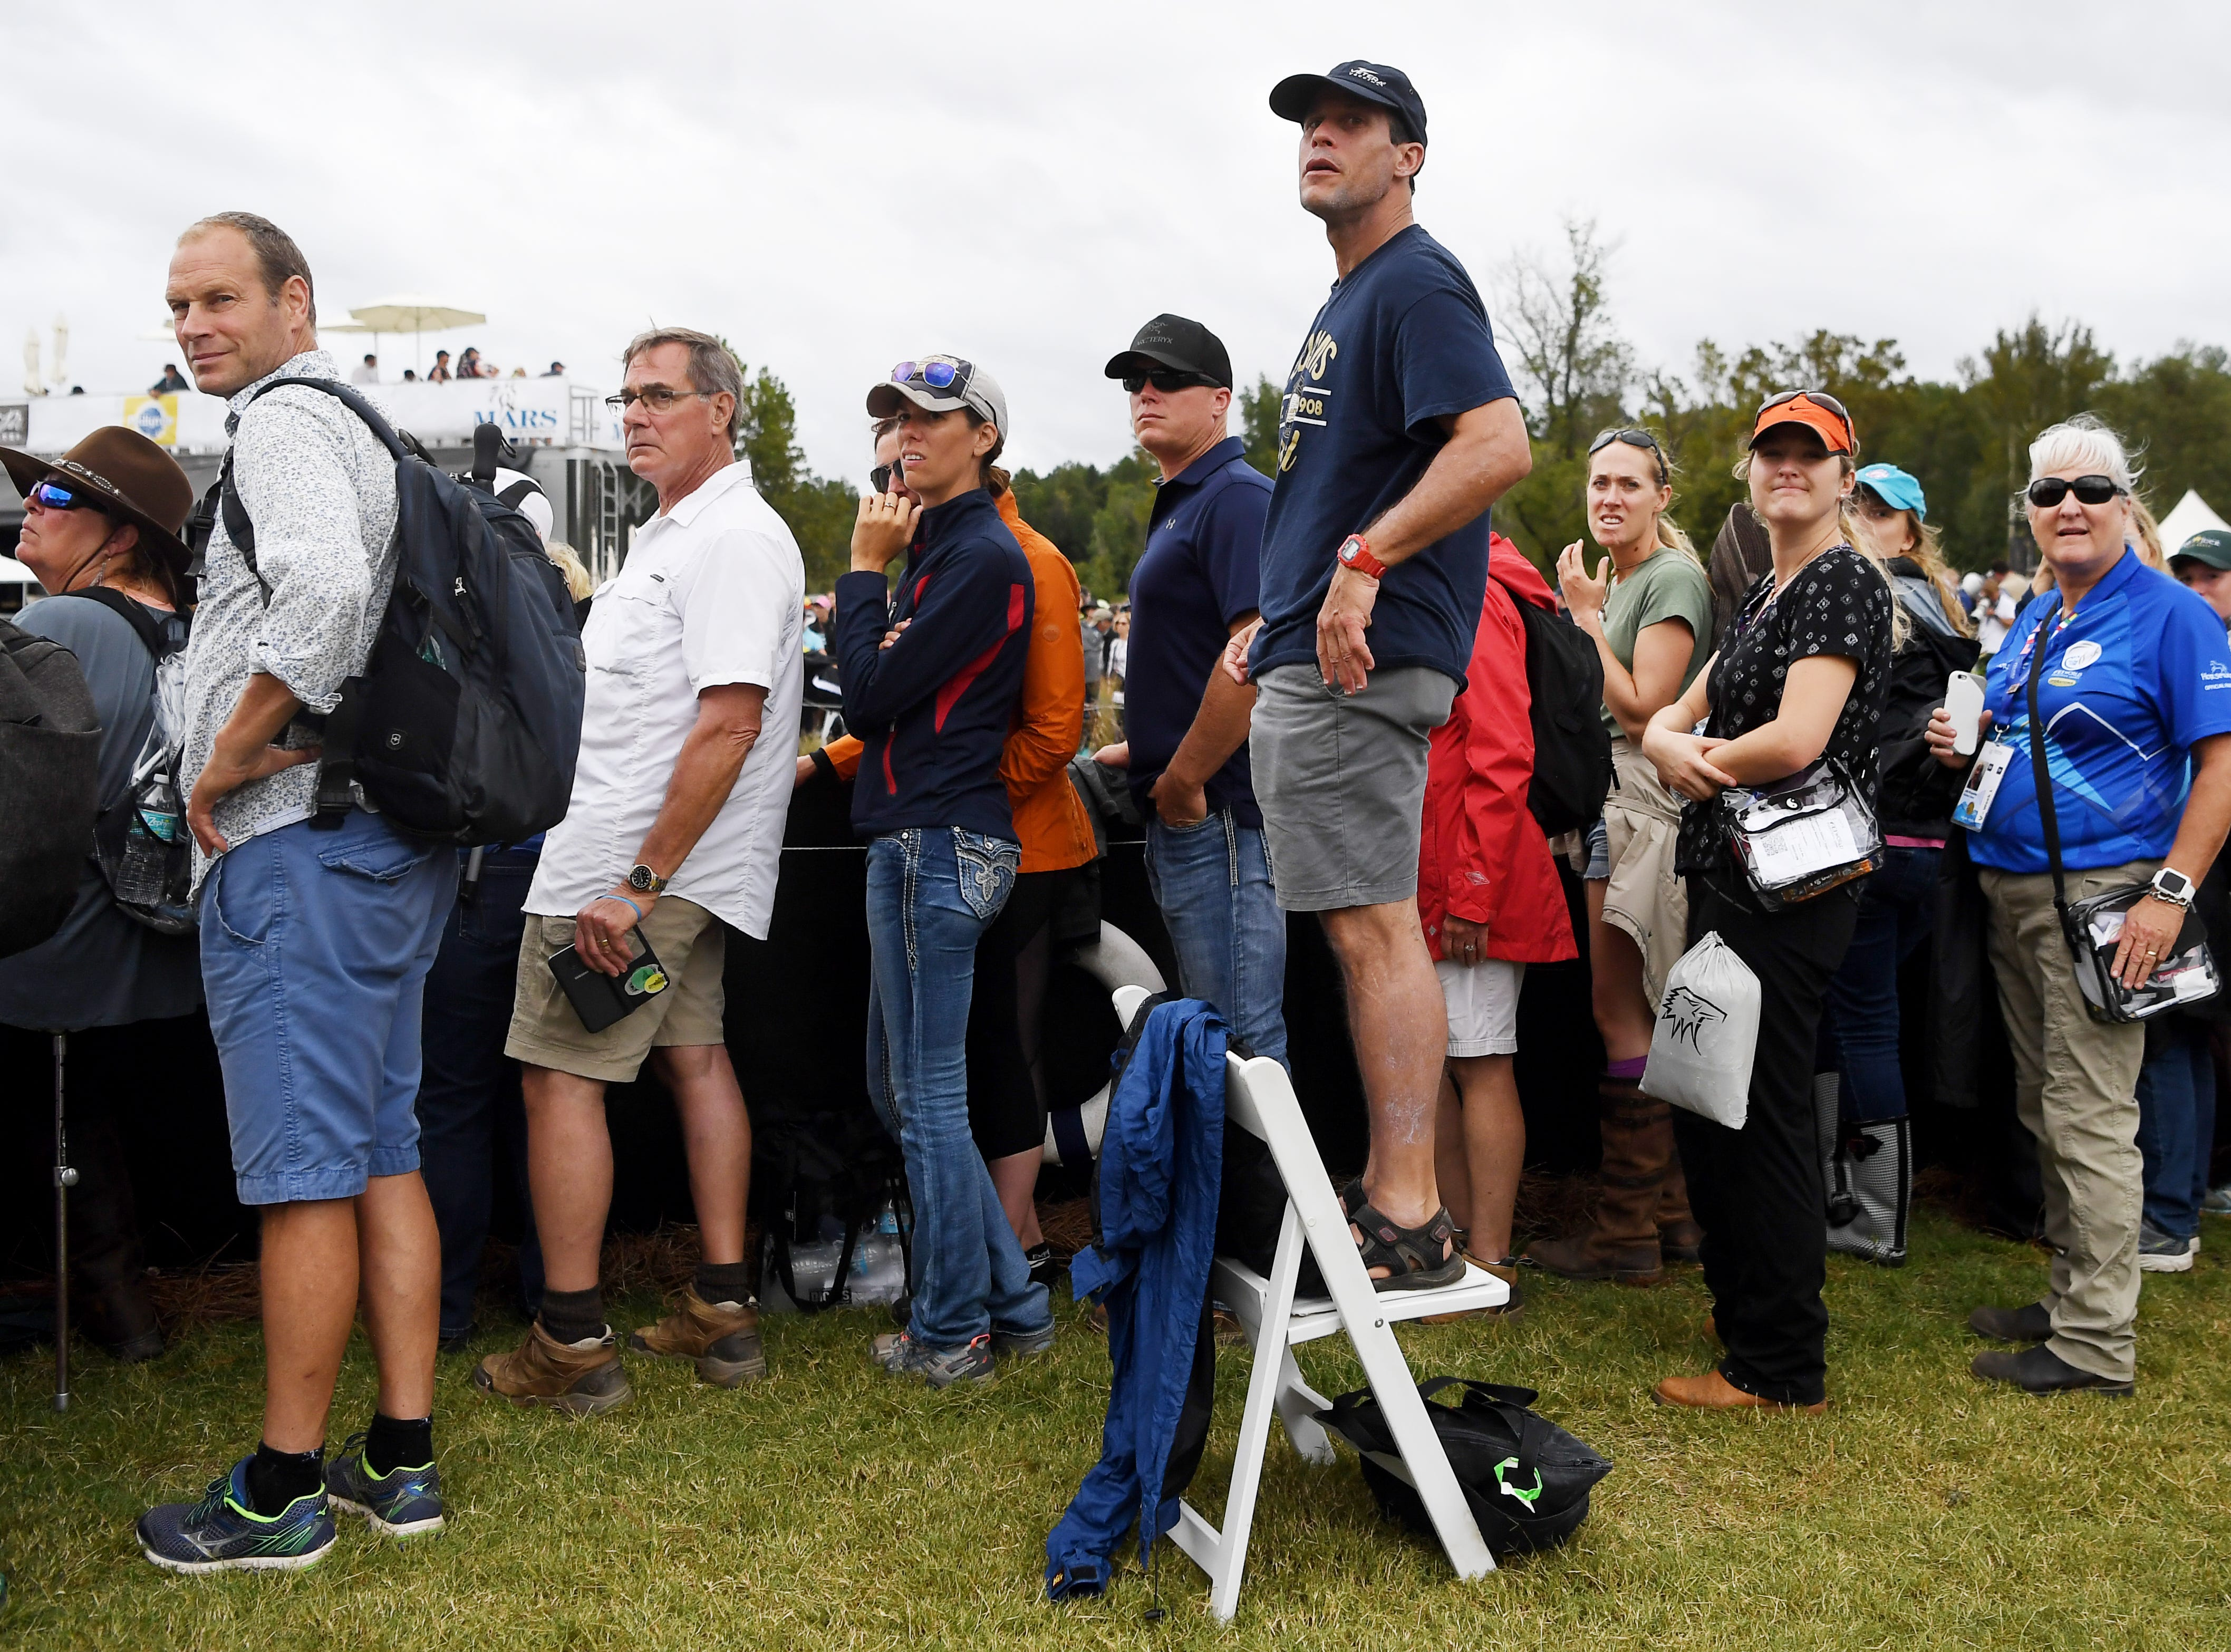 Spectators watch the cross country event on day four of the World Equestrian Games in Tryon Sept. 15, 2018.